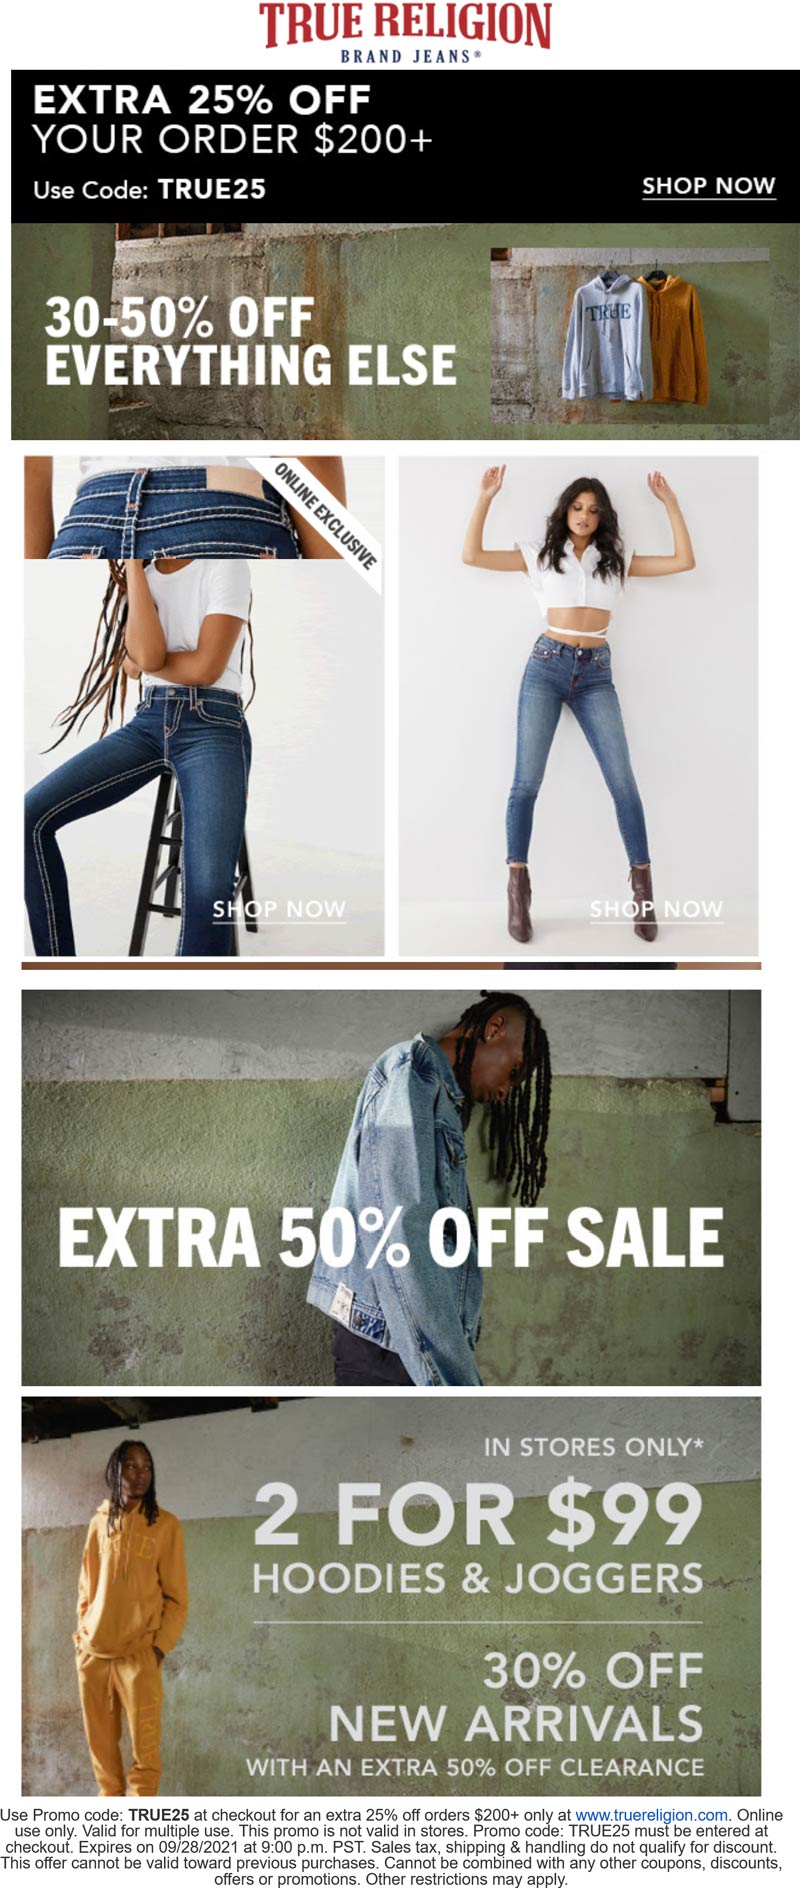 True Religion stores Coupon  30-50% off everything + extra 25% off $200 at True Religion via promo code TRUE25 #truereligion